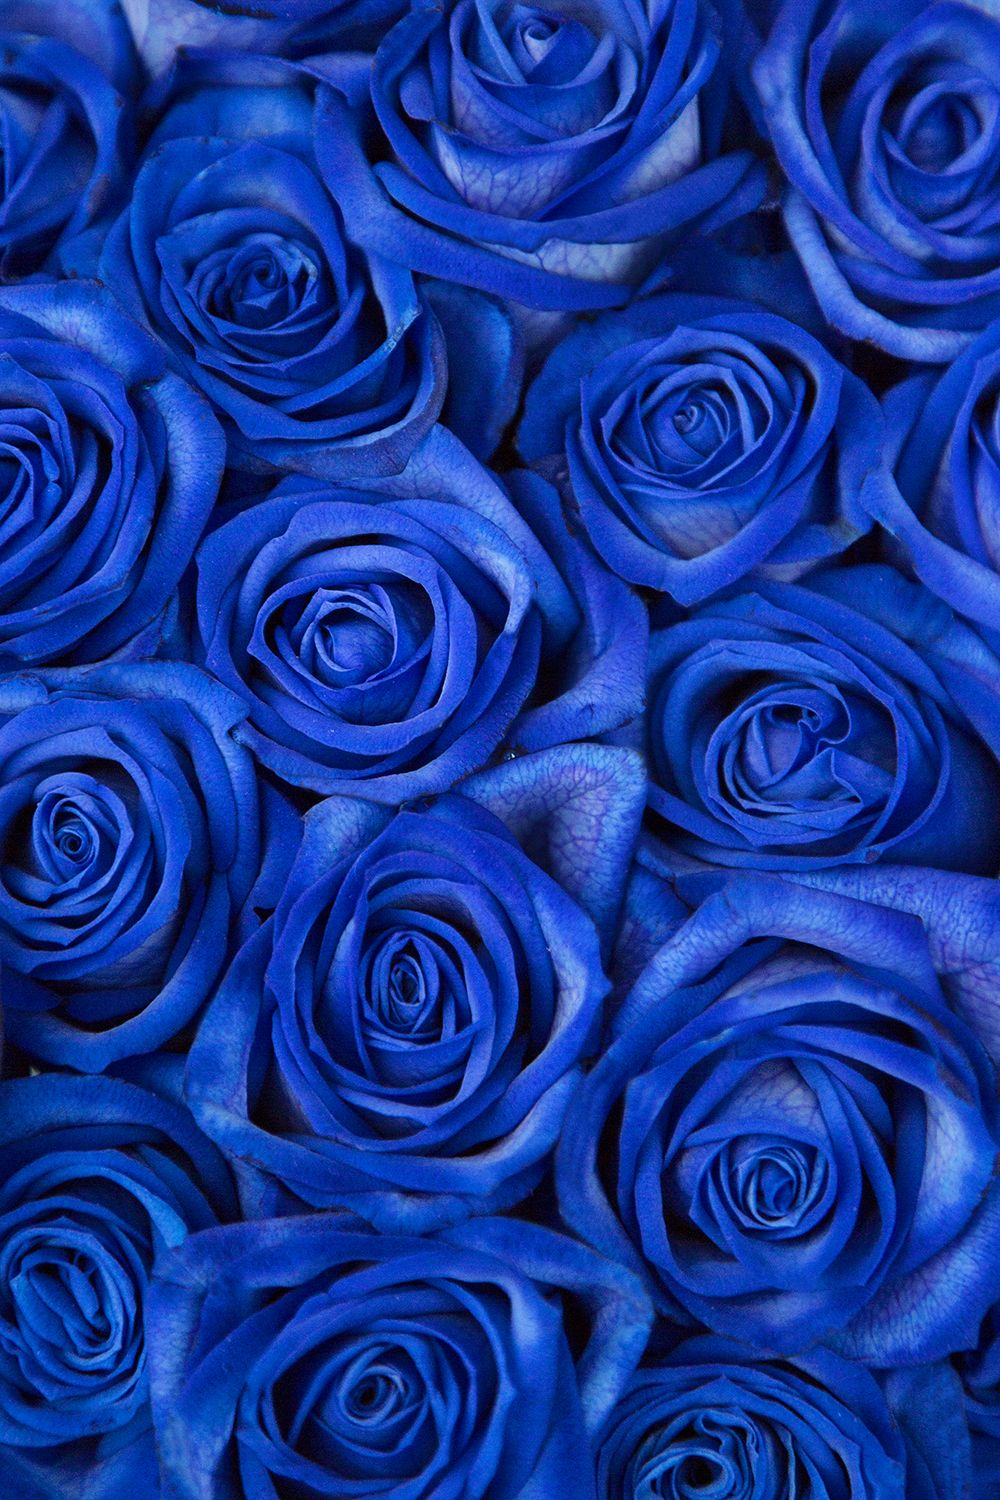 Multicoloured Roses Blue flower wallpaper, Blue roses